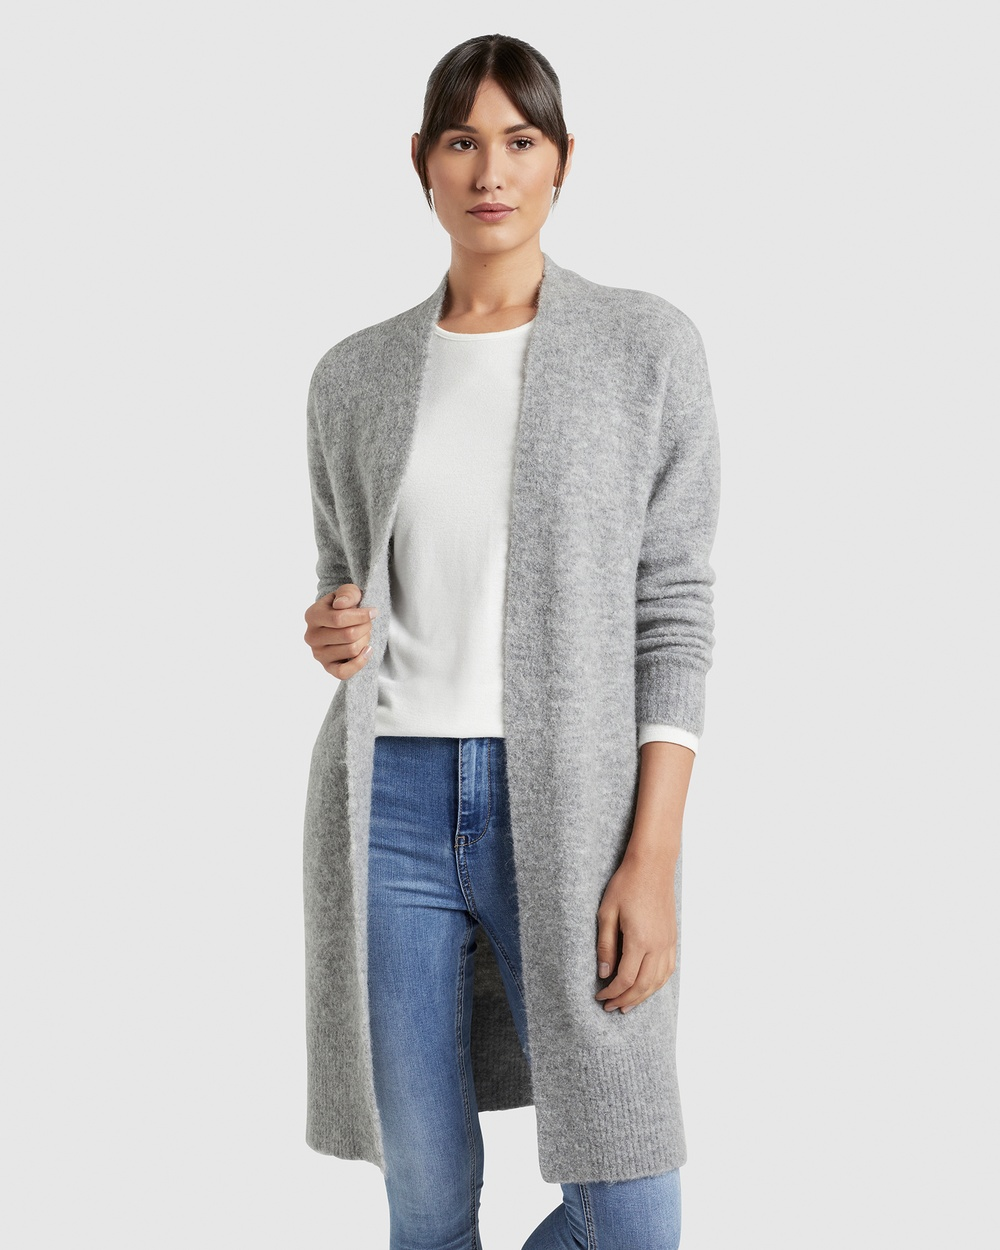 French Connection Relaxed Cosy Cardigan Jumpers & Cardigans GREY MARLE Australia